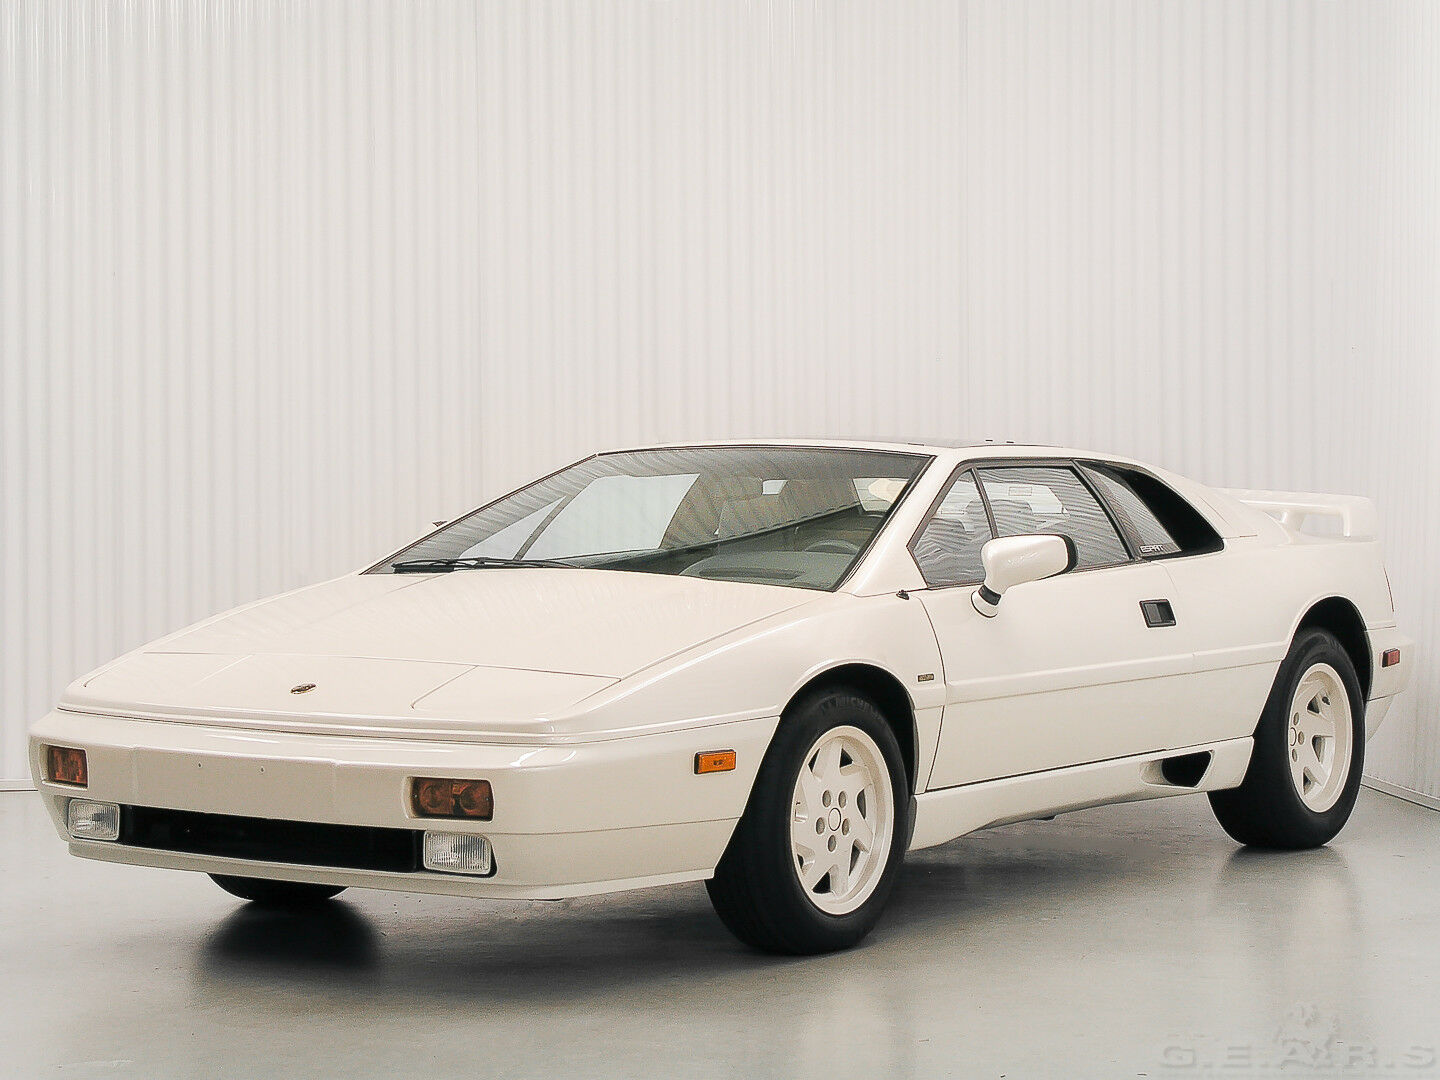 1988 Lotus Esprit Turbo Anniversary 77 of 88 Georgia 8